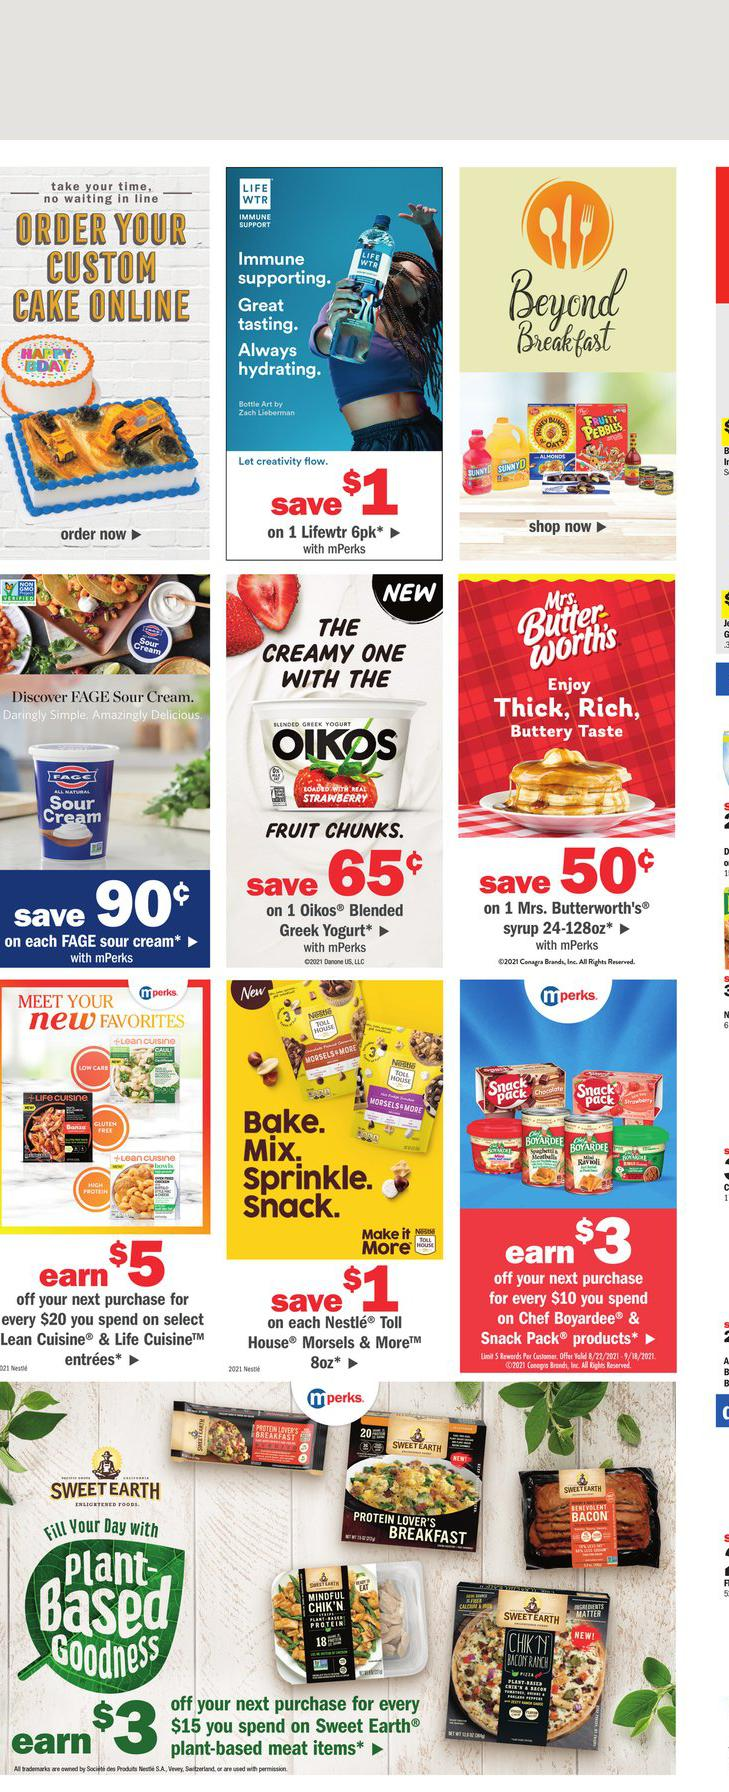 12.09.2021 Meijer ad 5. page